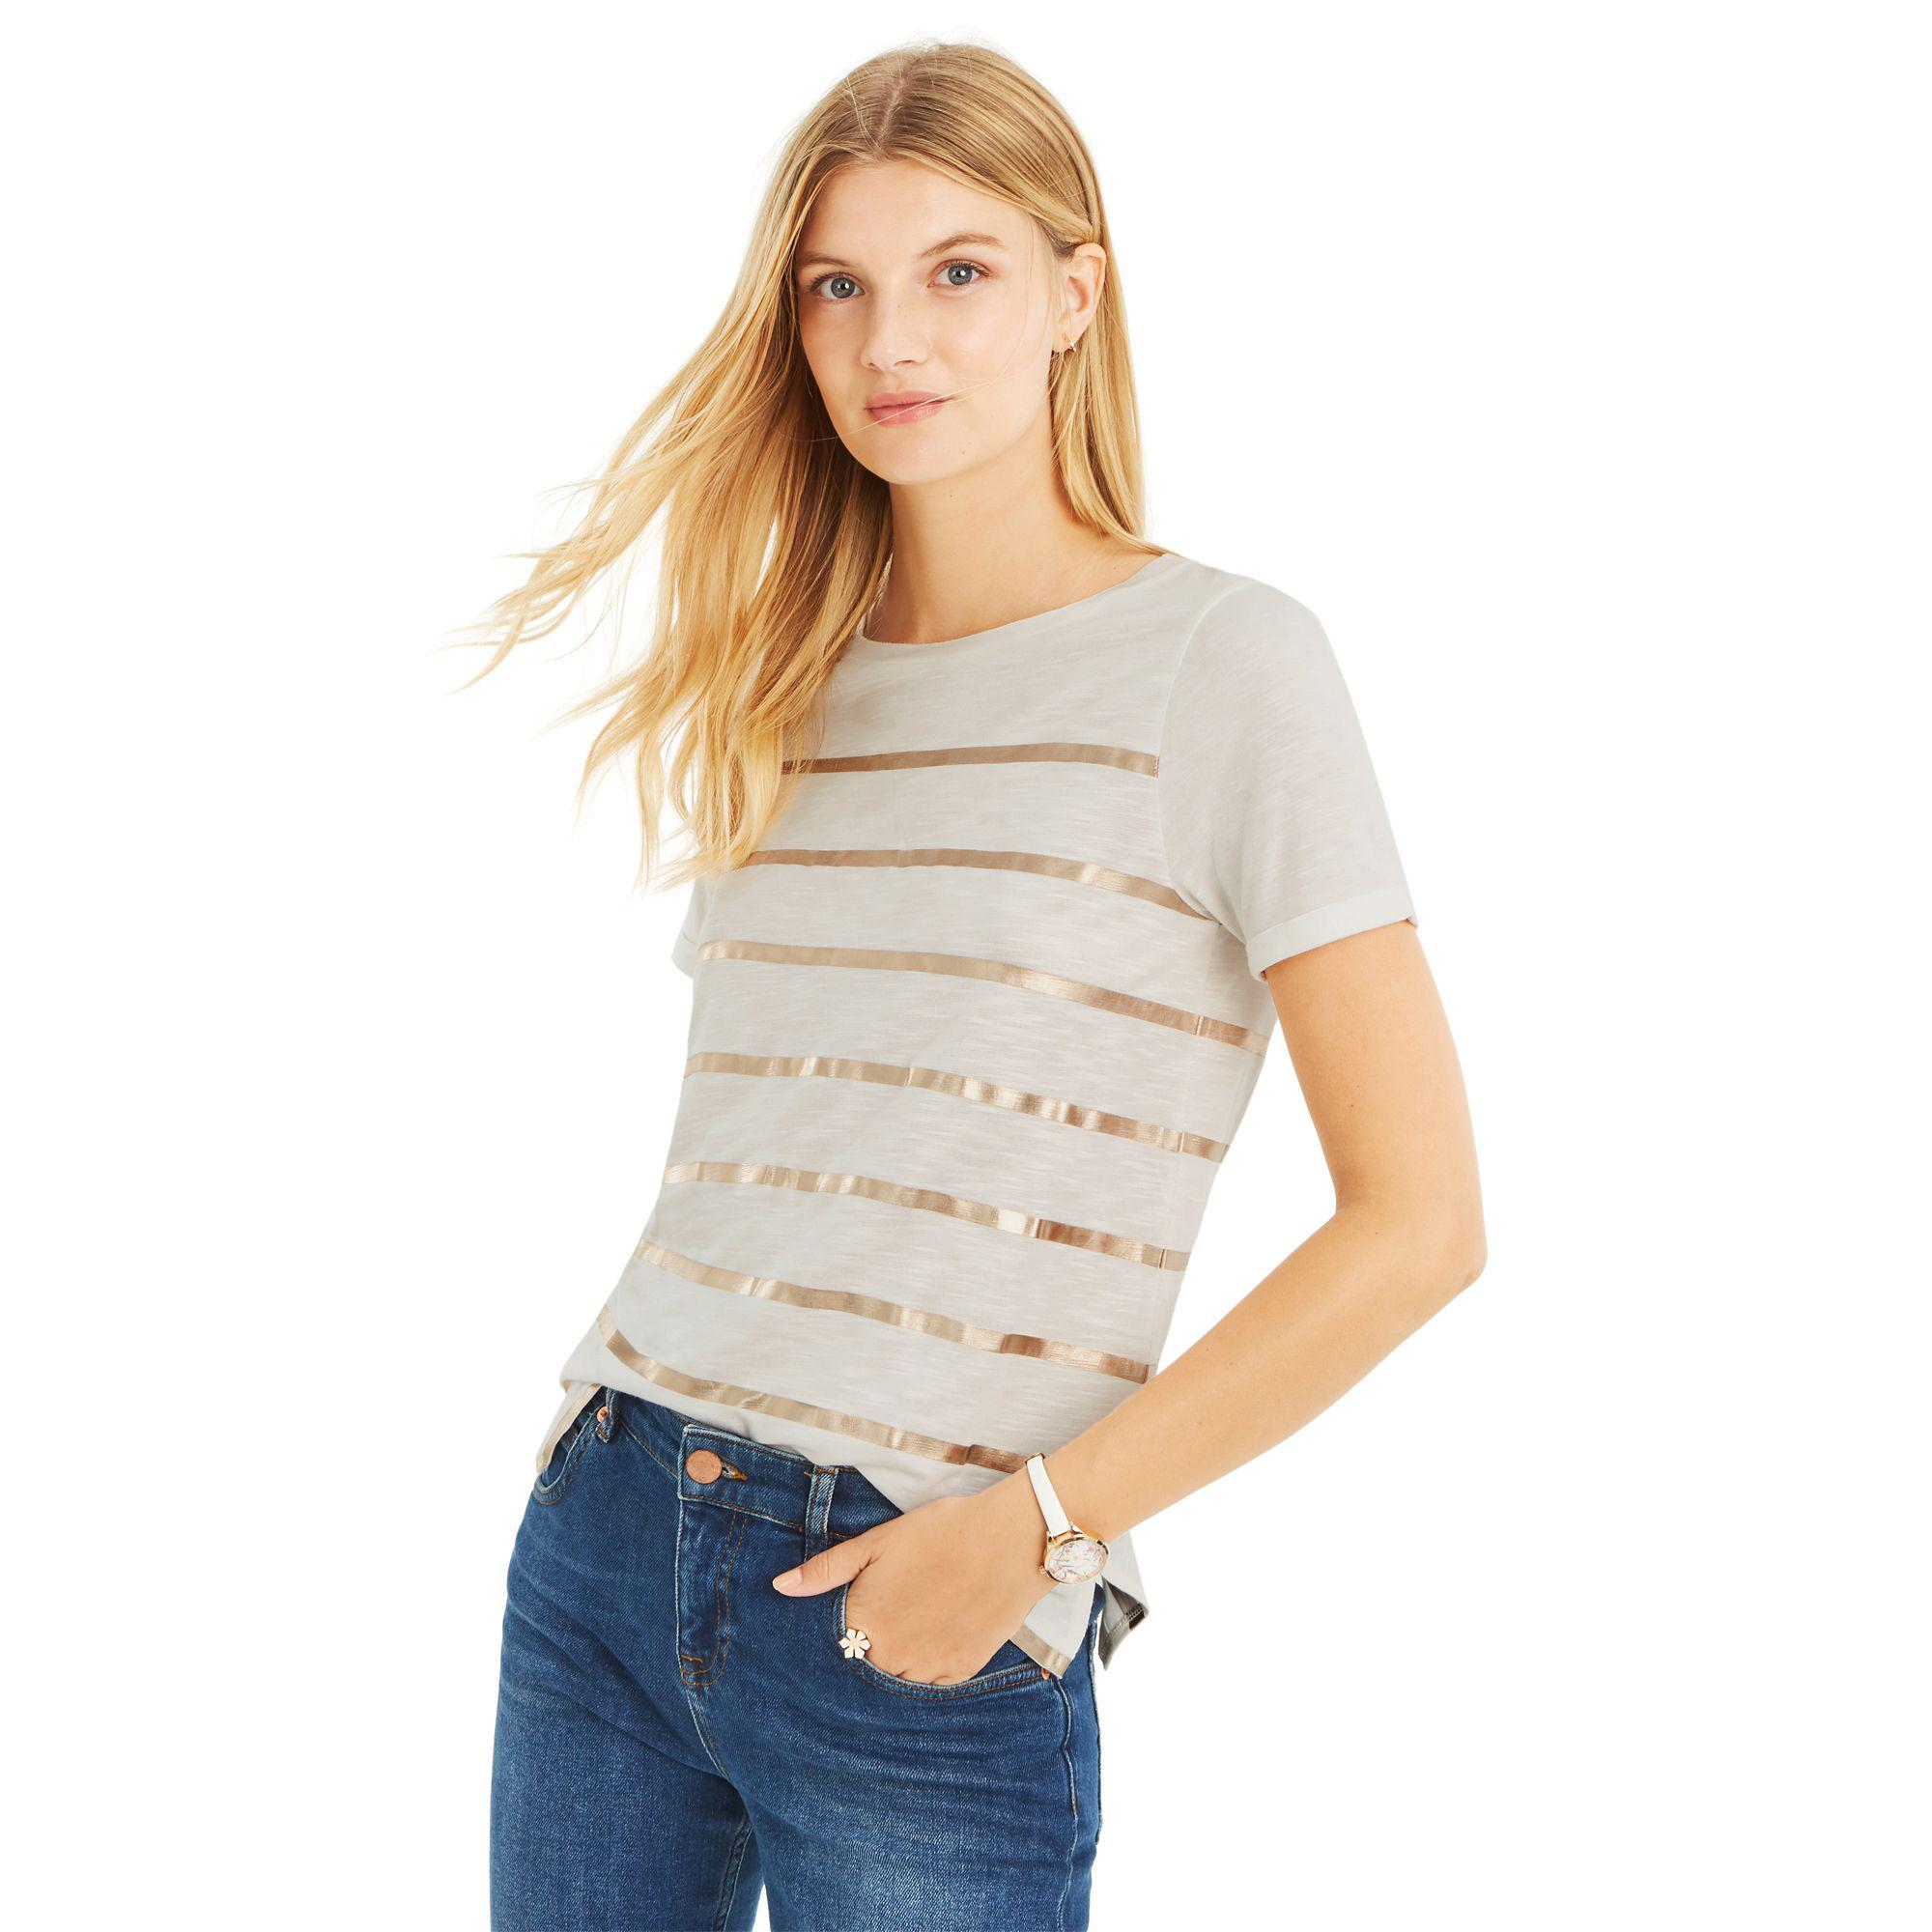 c3cefcaa22ca Oasis White Foil Stripe Slub T-shirts in White - Save 25.0% - Lyst